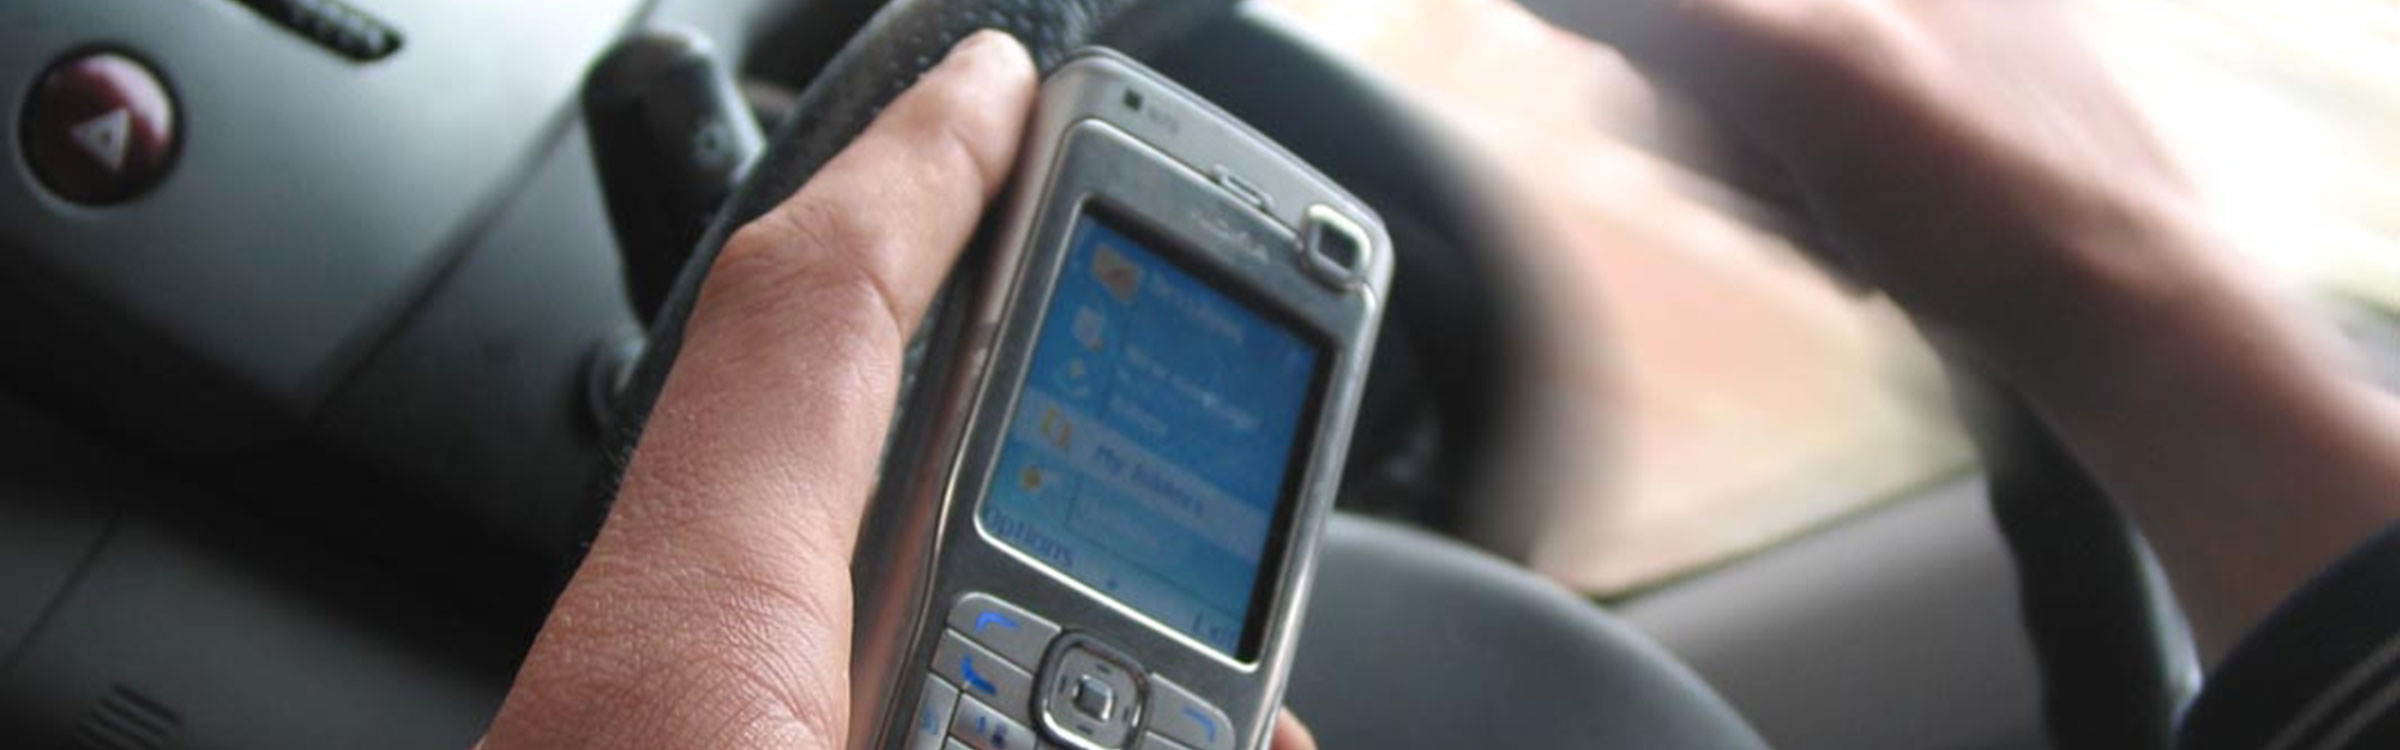 820 driver mobile phone hand